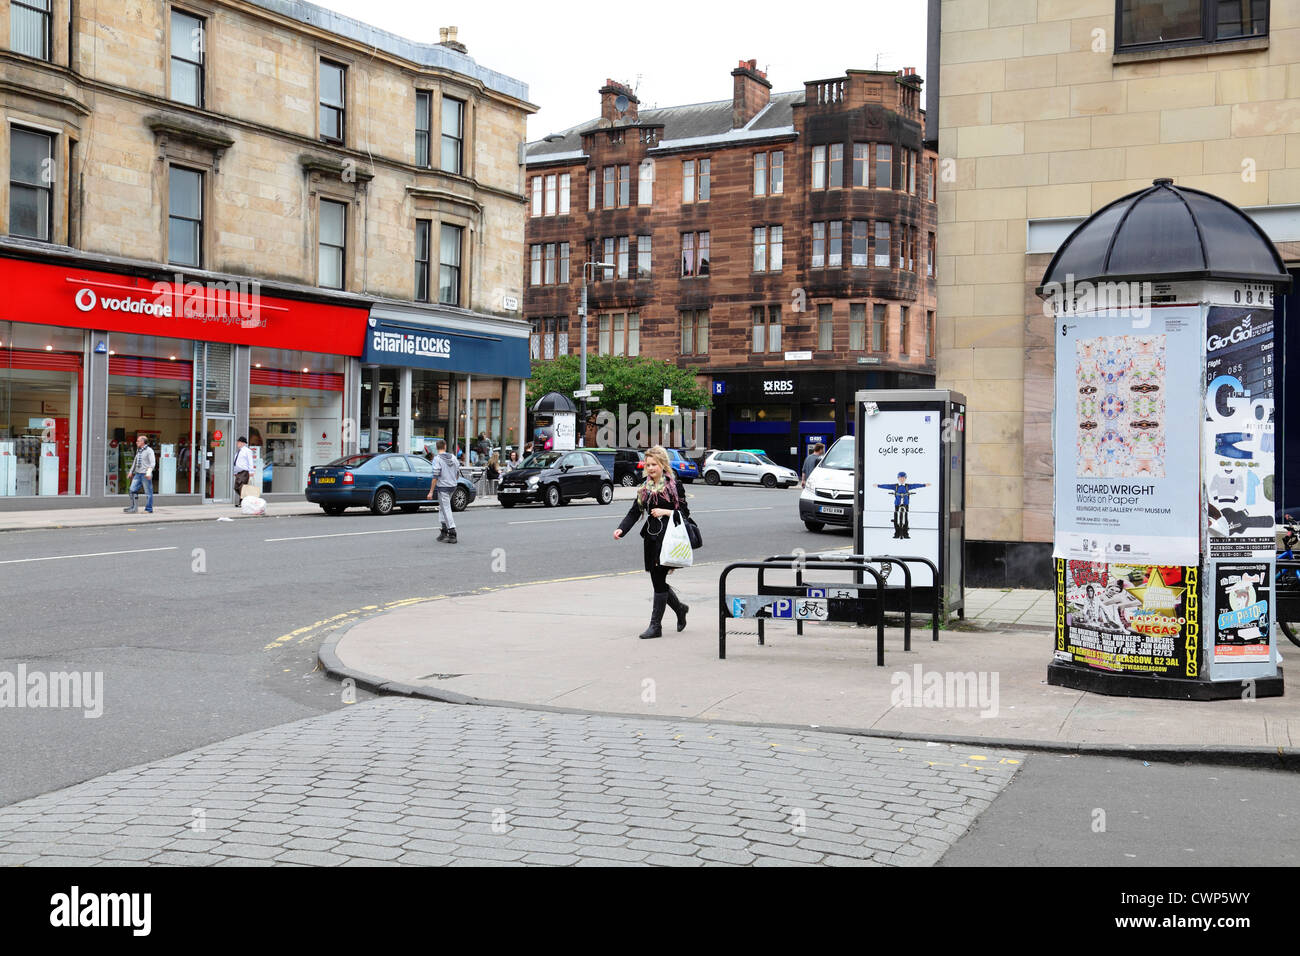 Byres Road in the West End of Glasgow, Scotland, UK - Stock Image